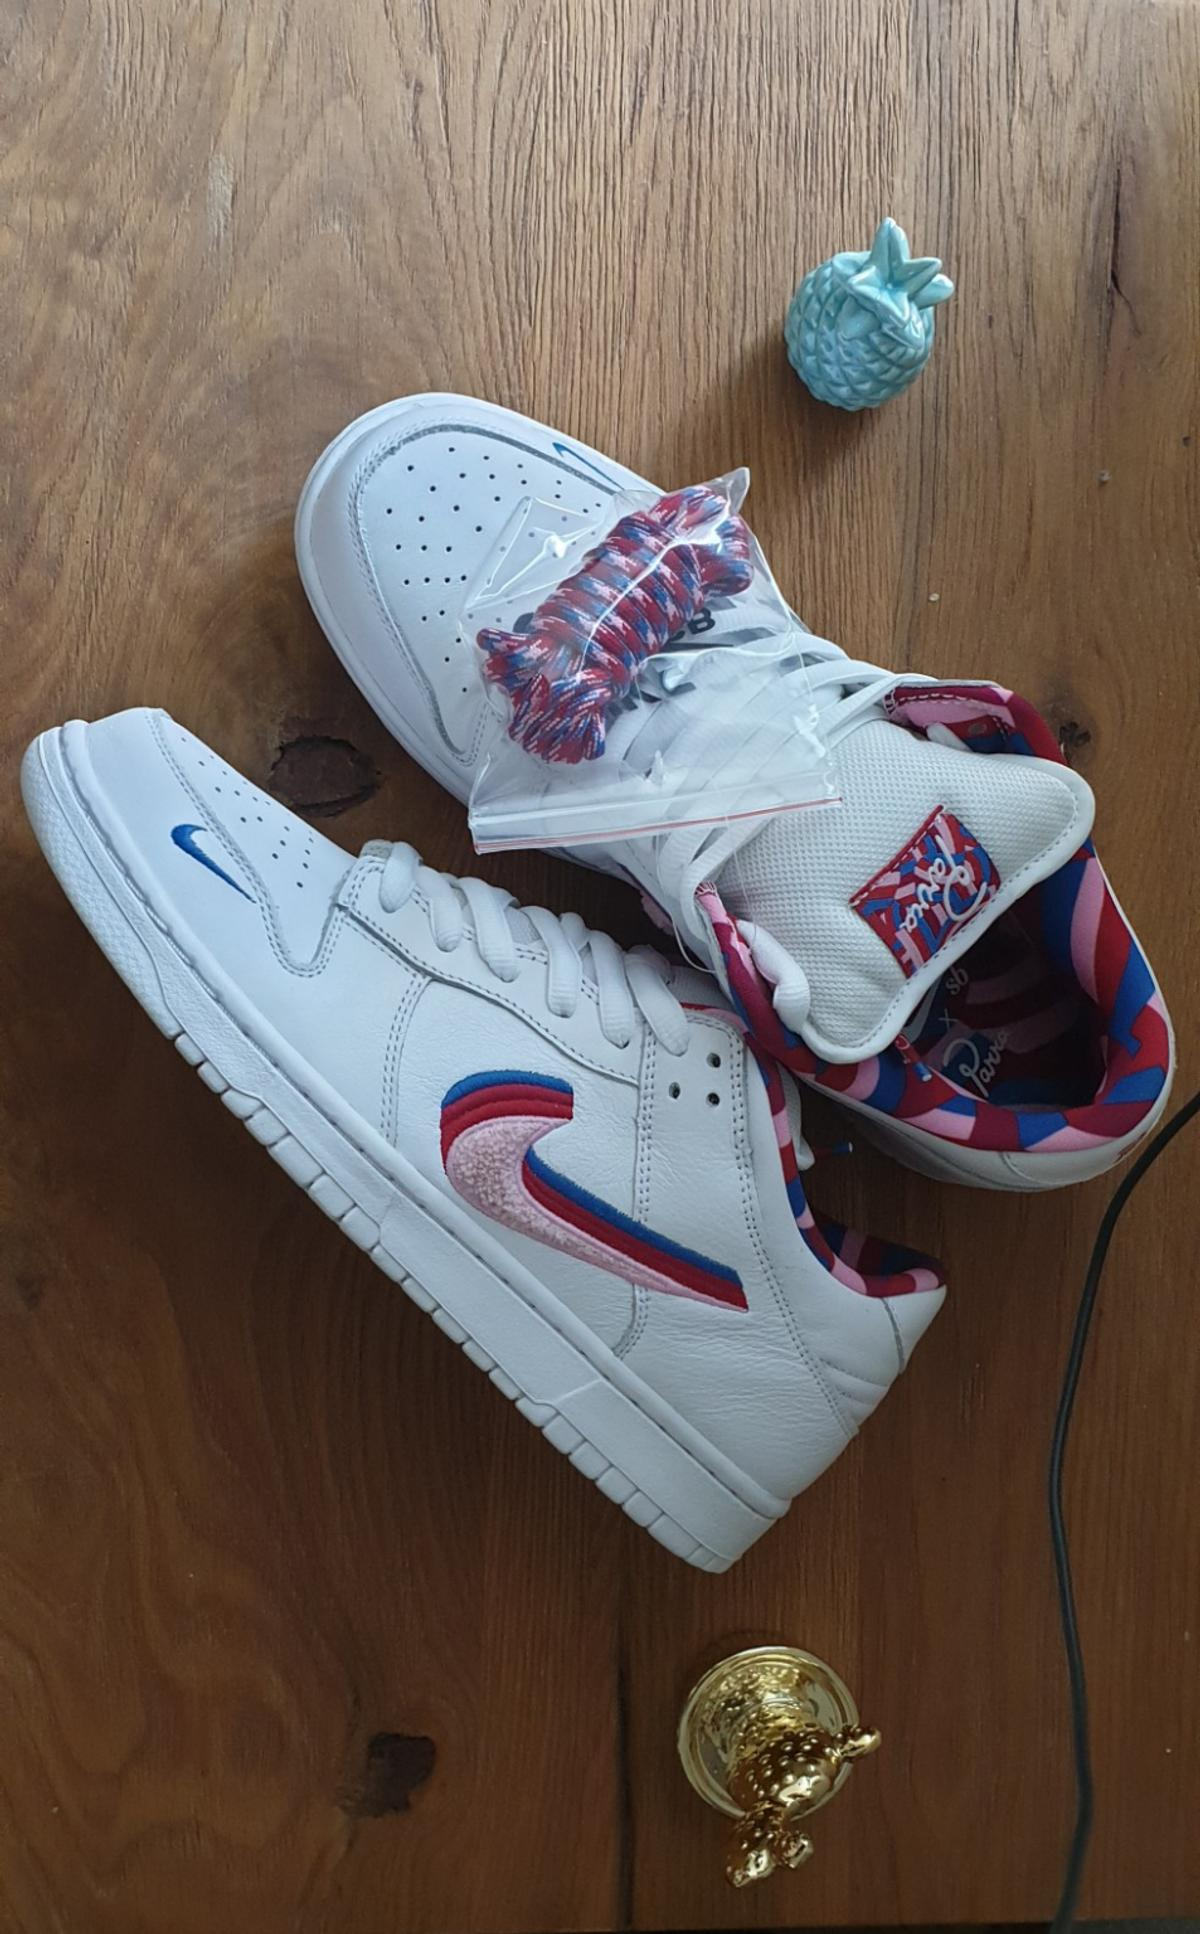 Nike sb Dunk Low Parra US10 EU 44. in 72622 Nürtingen für